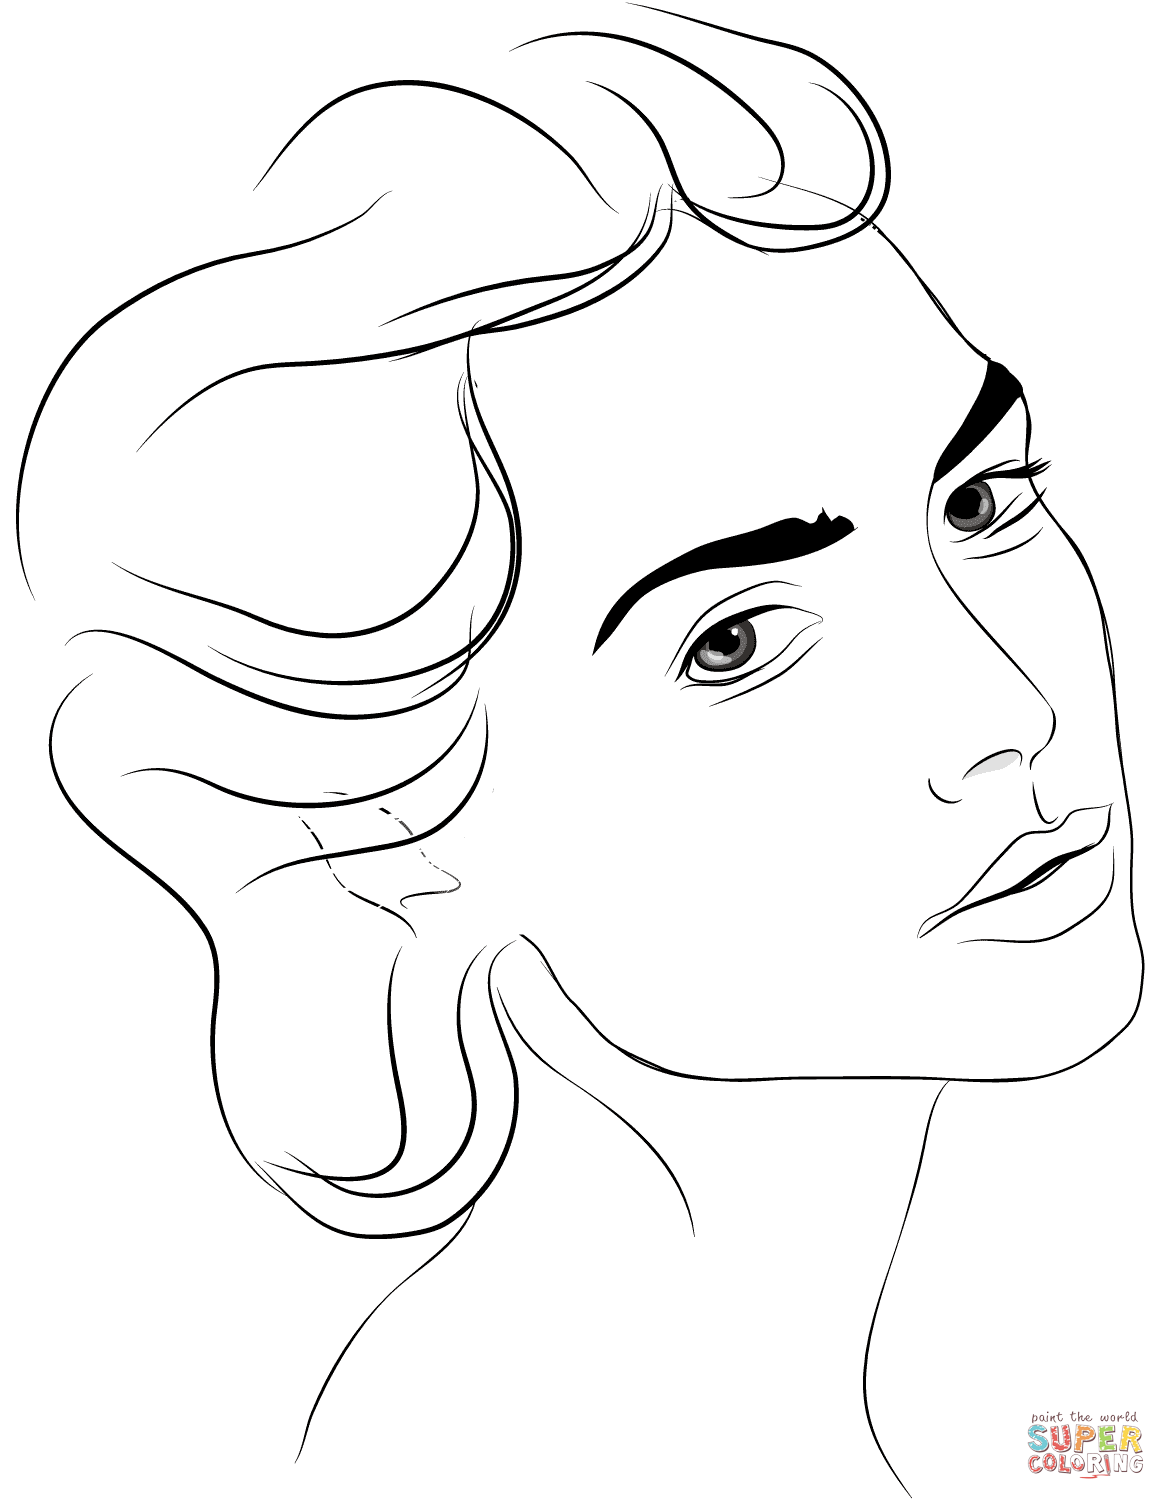 1166x1500 Woman's Side Profile Coloring Page Free Printable Coloring Pages